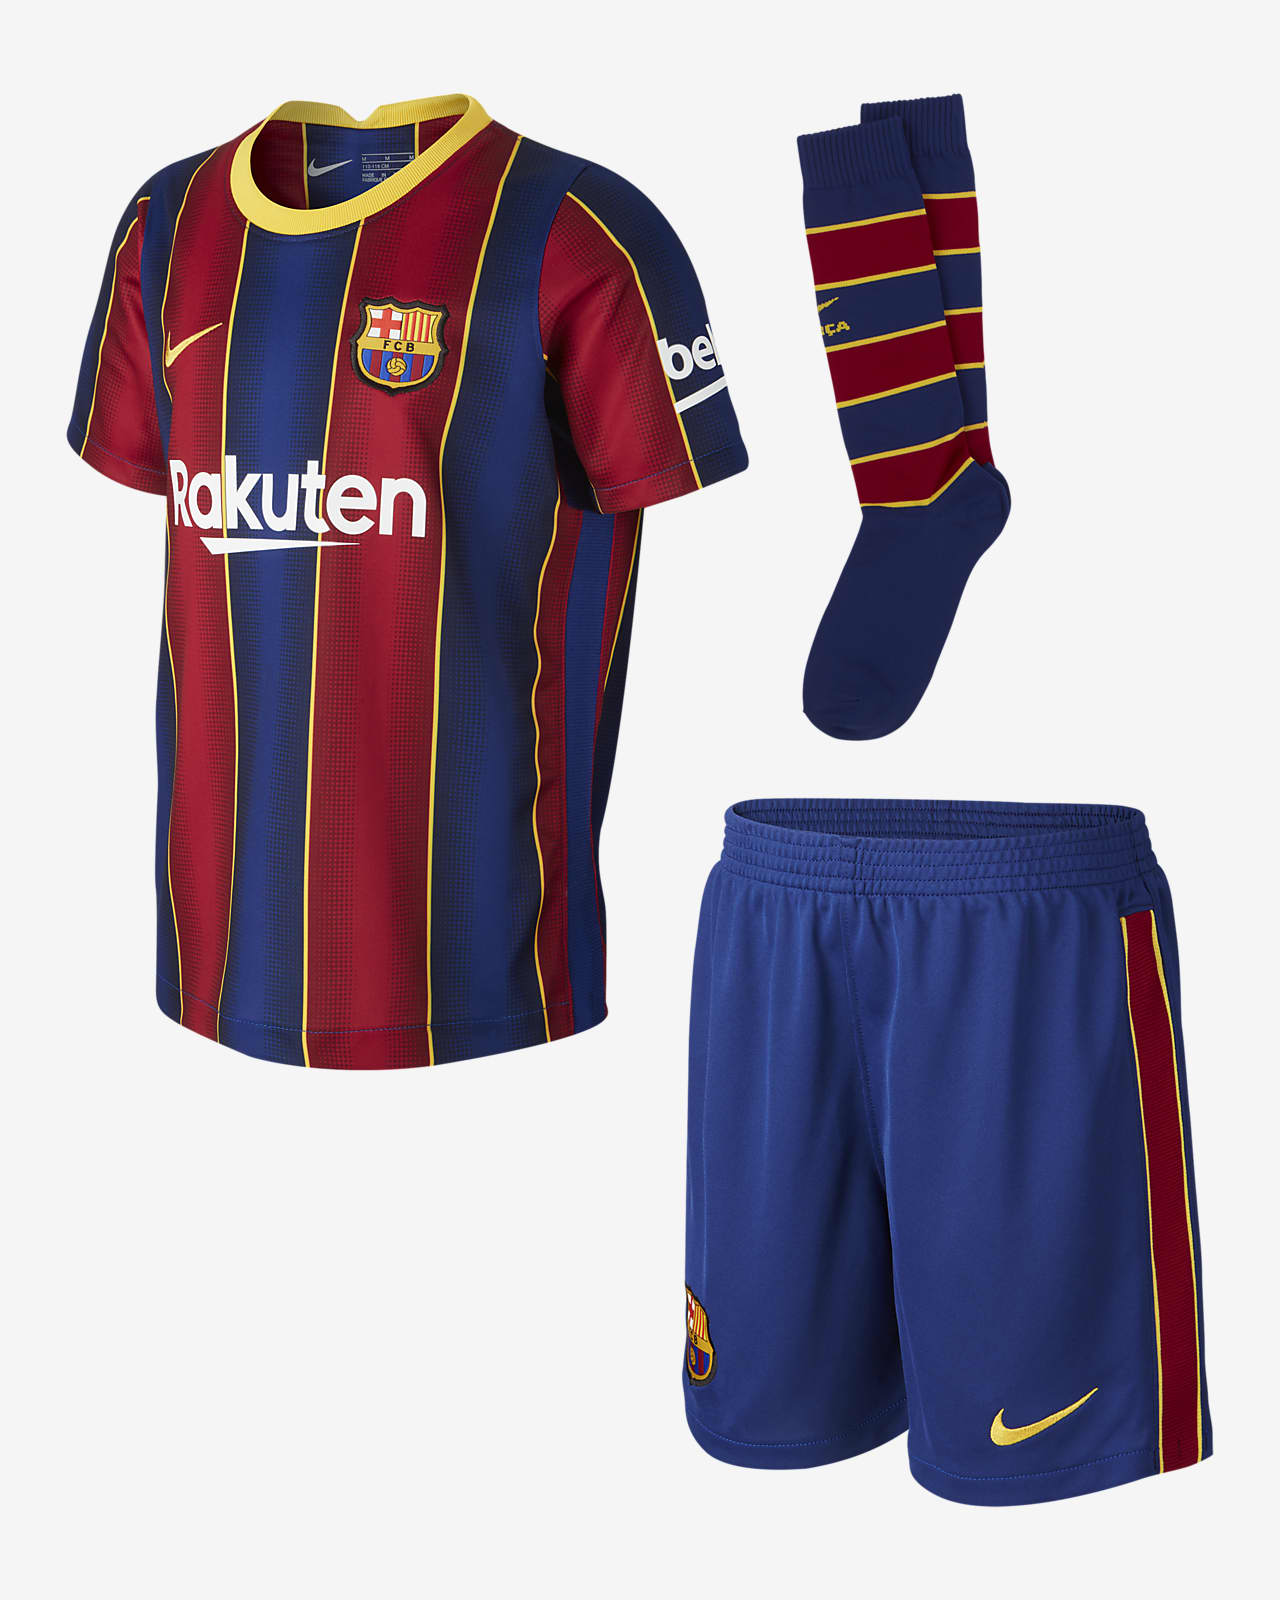 fc barcelona 2020 21 home younger kids football kit nike gb fc barcelona 2020 21 home younger kids football kit